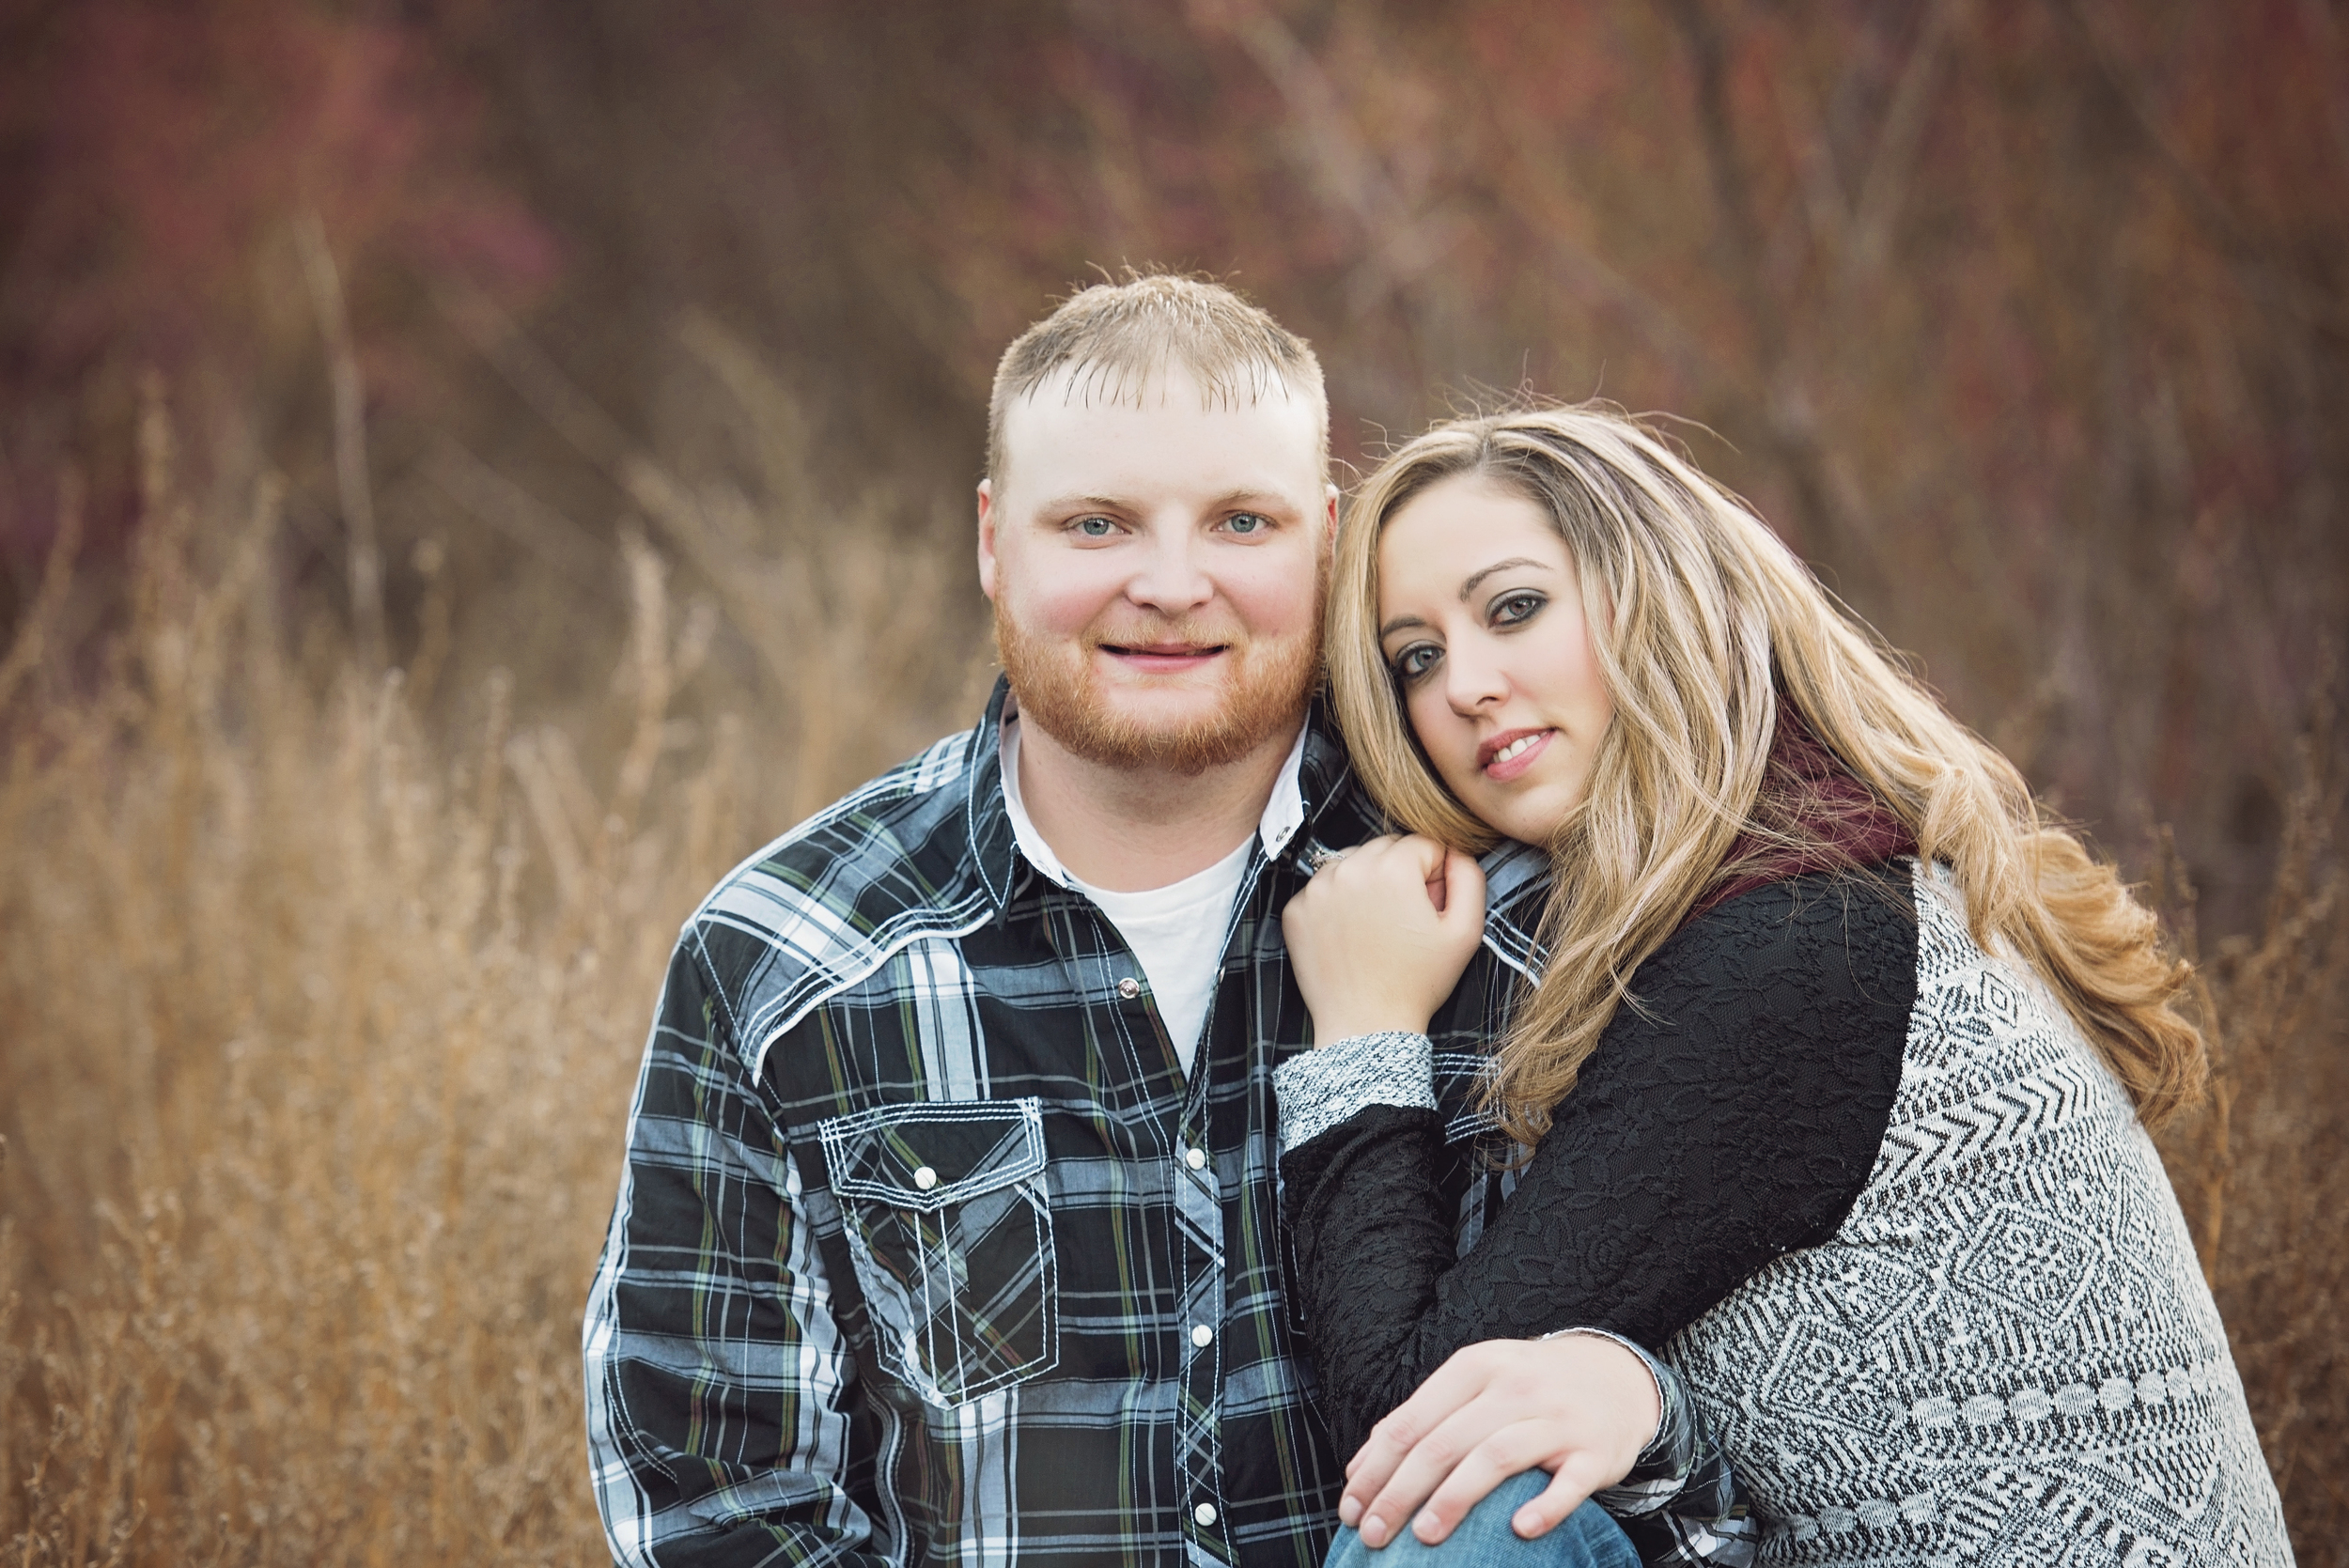 engagement-photography-gardencity-ks-17.jpg